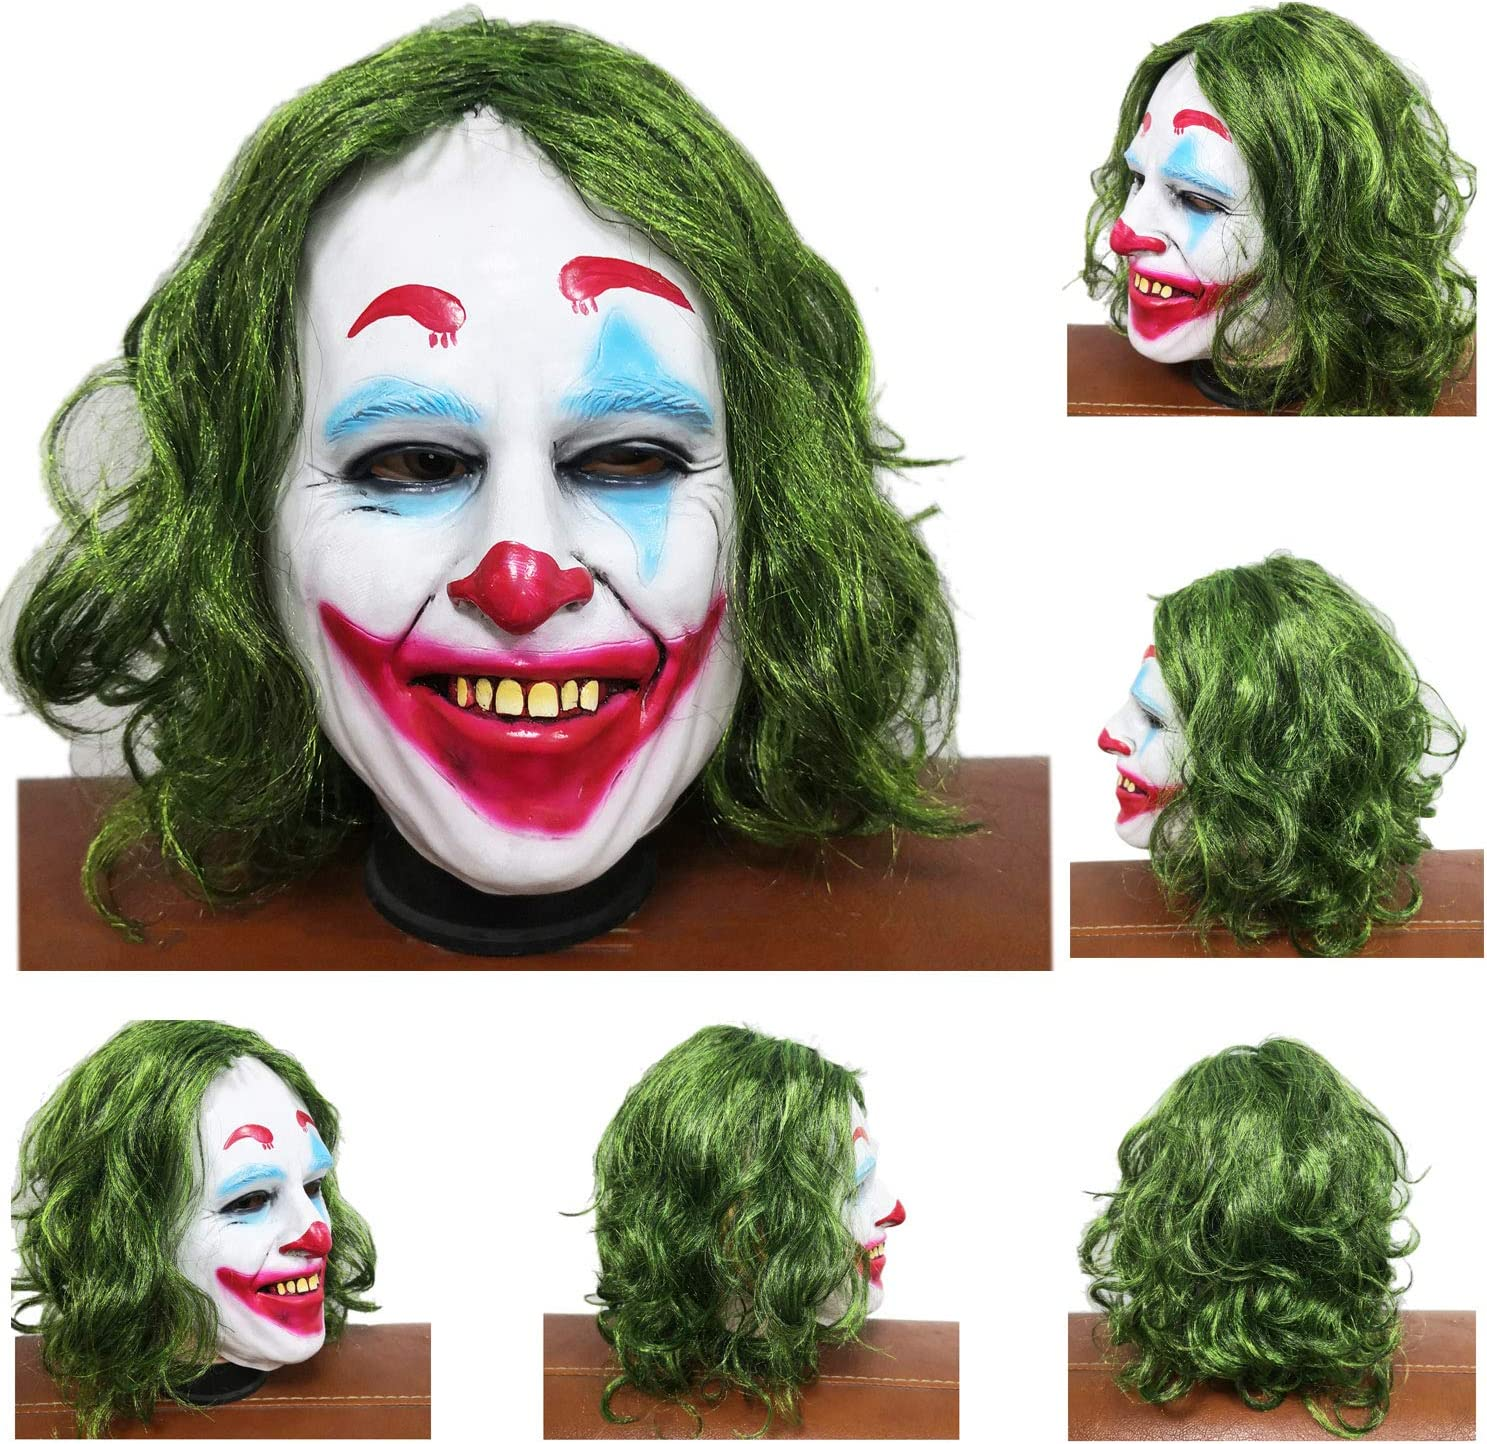 Curly Bald Clown Halloween Horror Creepy Latex Masks Dressing Costume Cosplay Scary Clown Mask